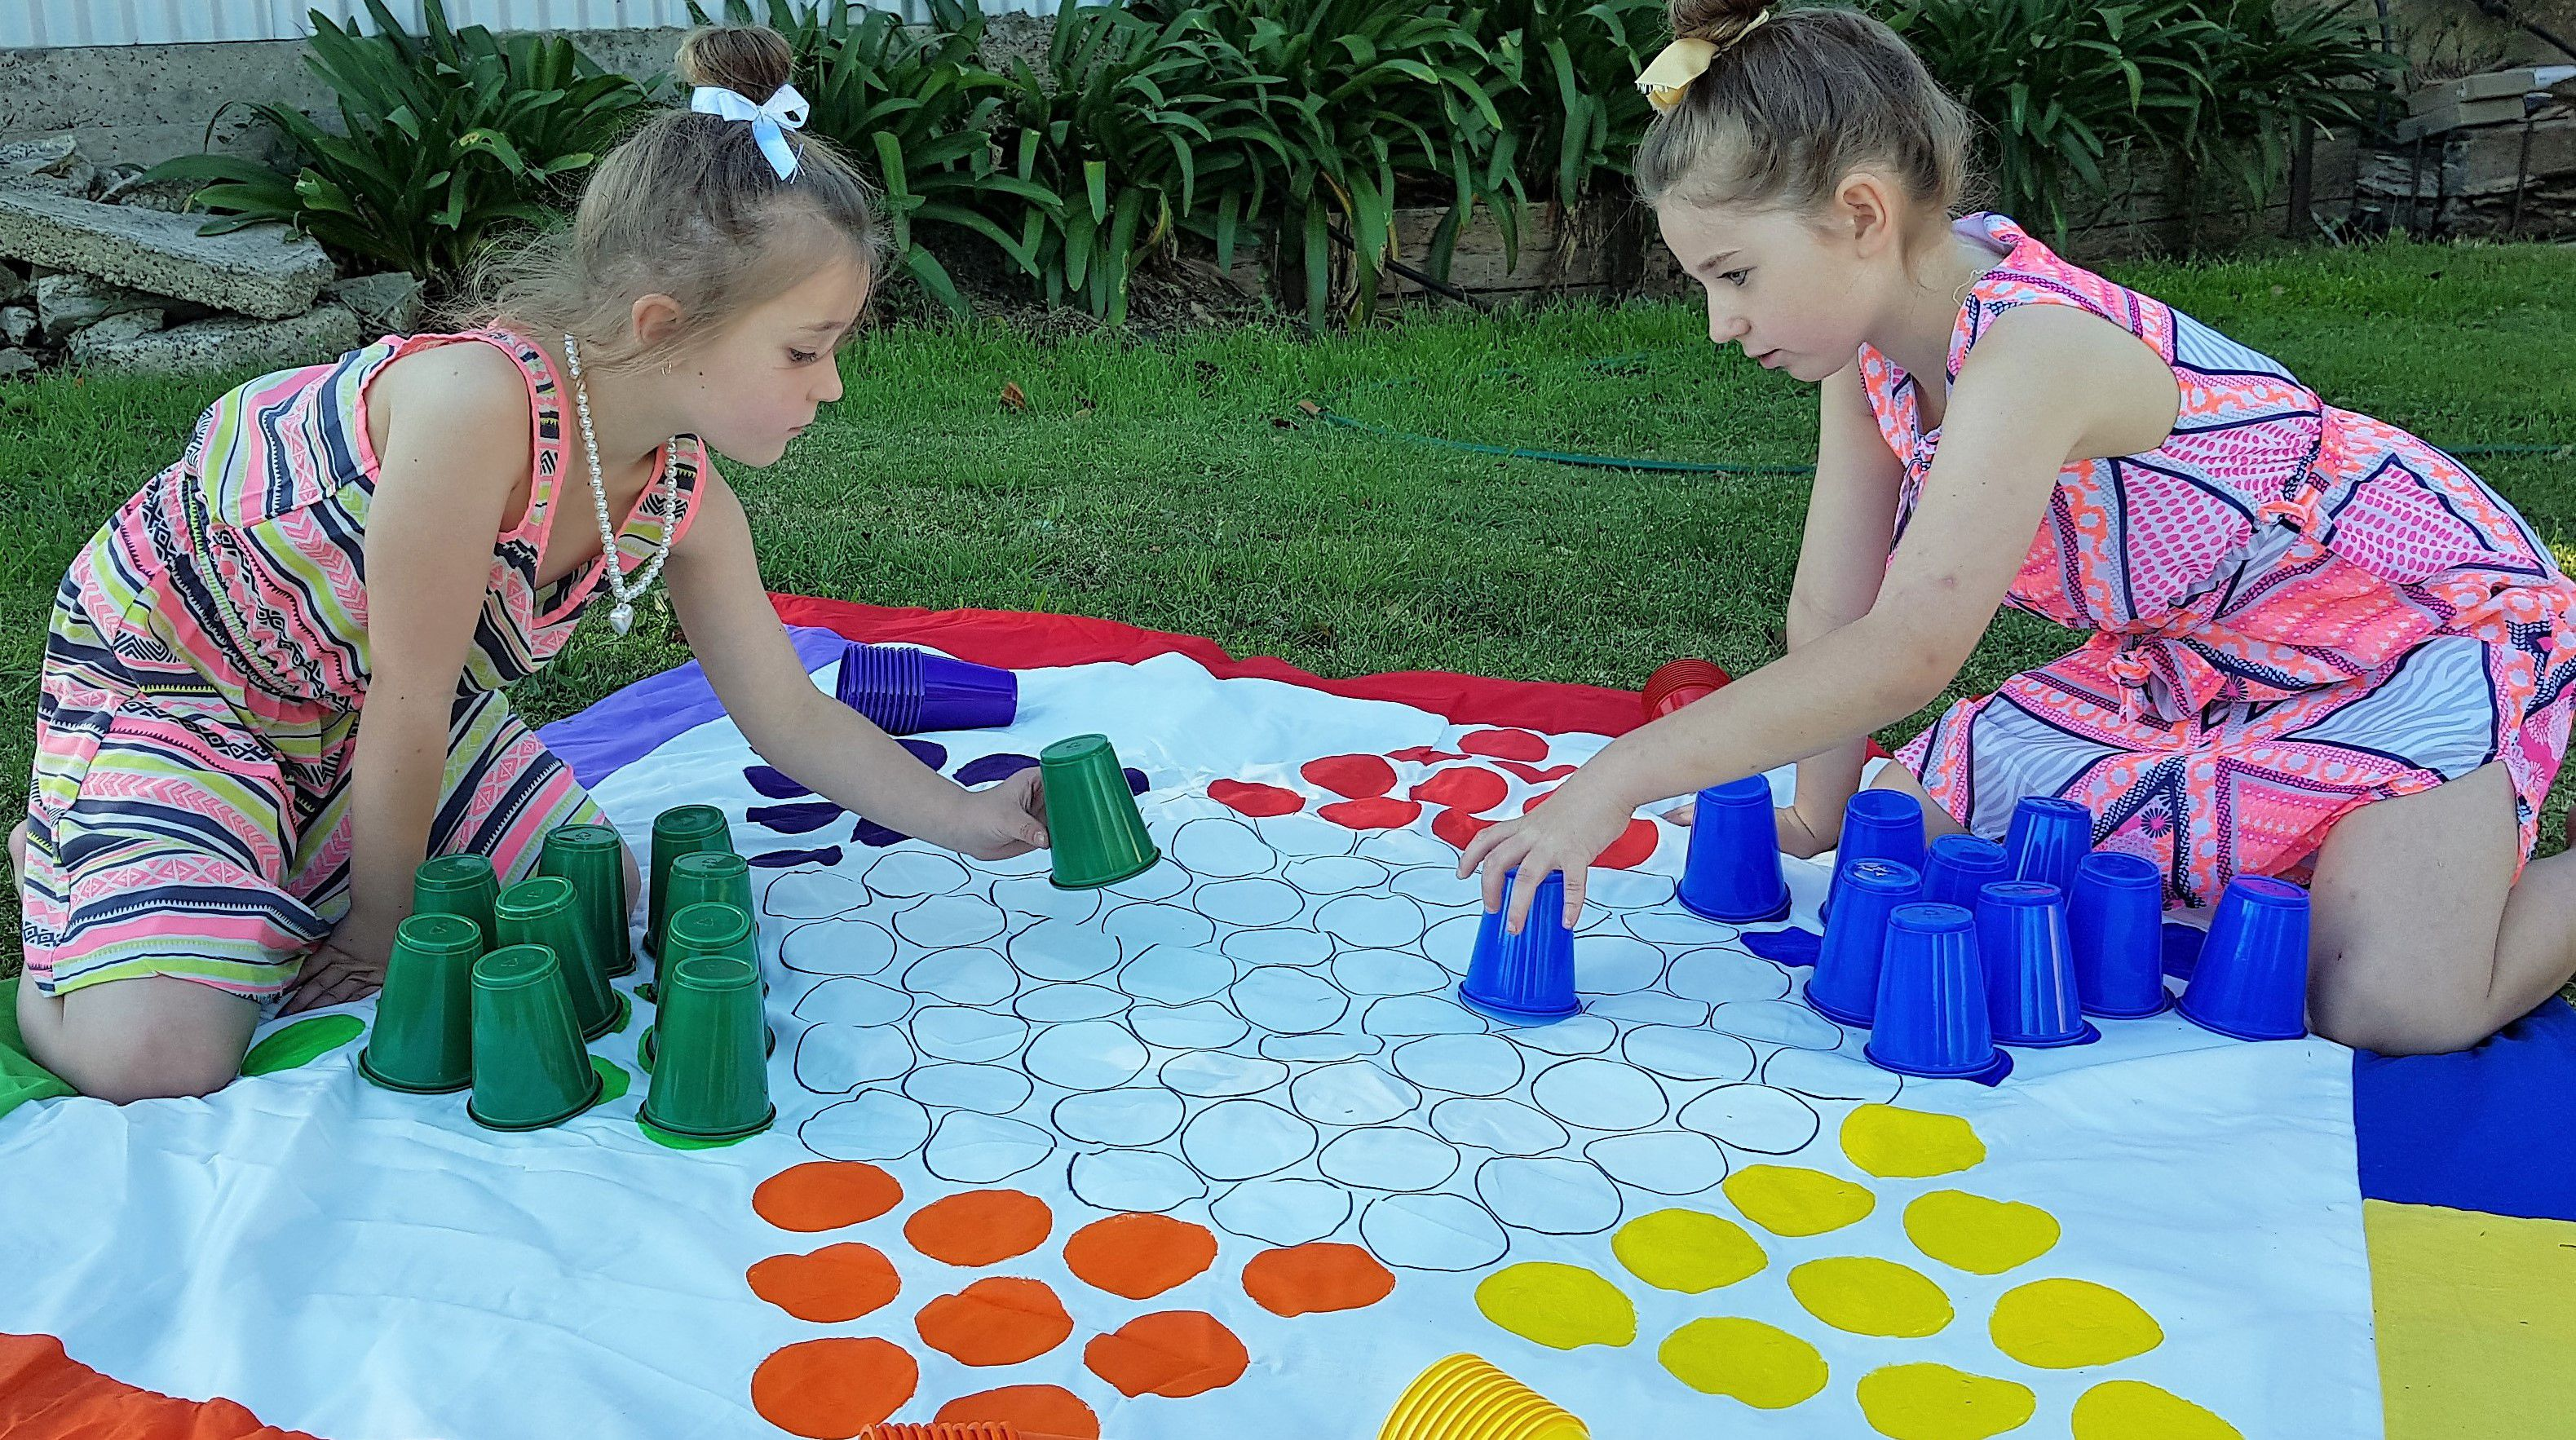 outdoorgames lawngames yardgames campinggames eventgames beachgames weddinggames giantgames